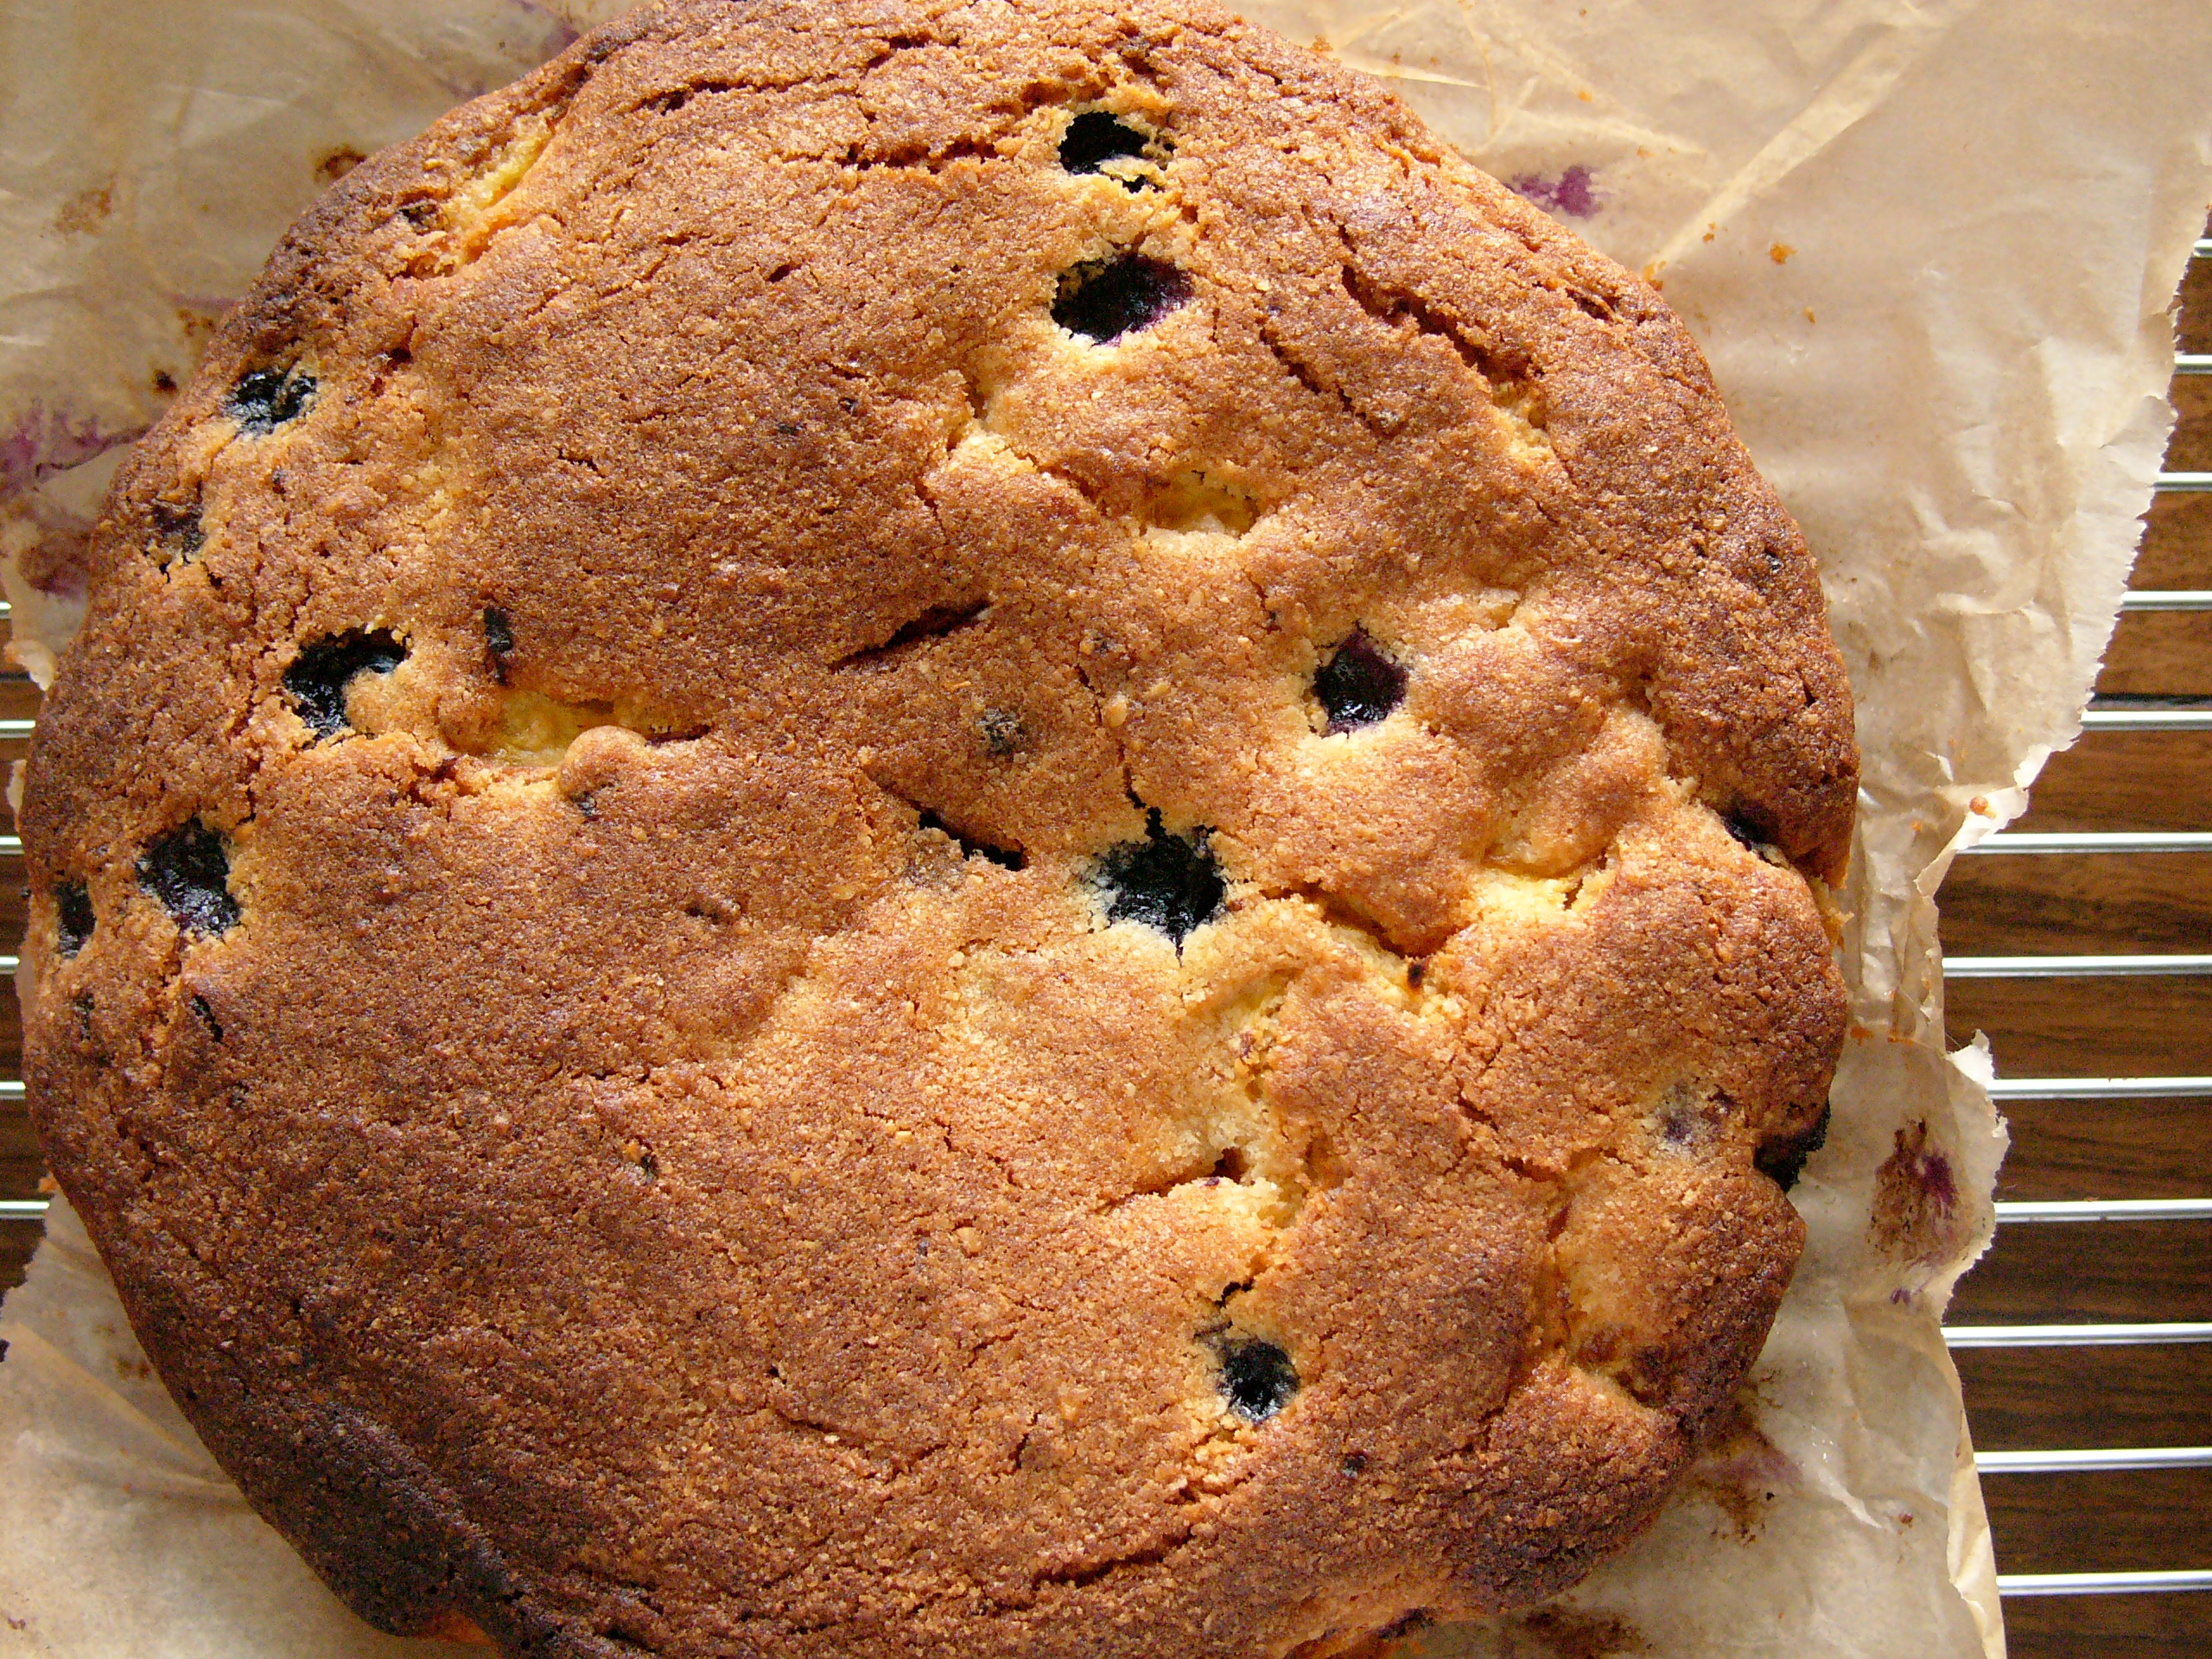 Nigel Slater's Blueberry and Peach Cake